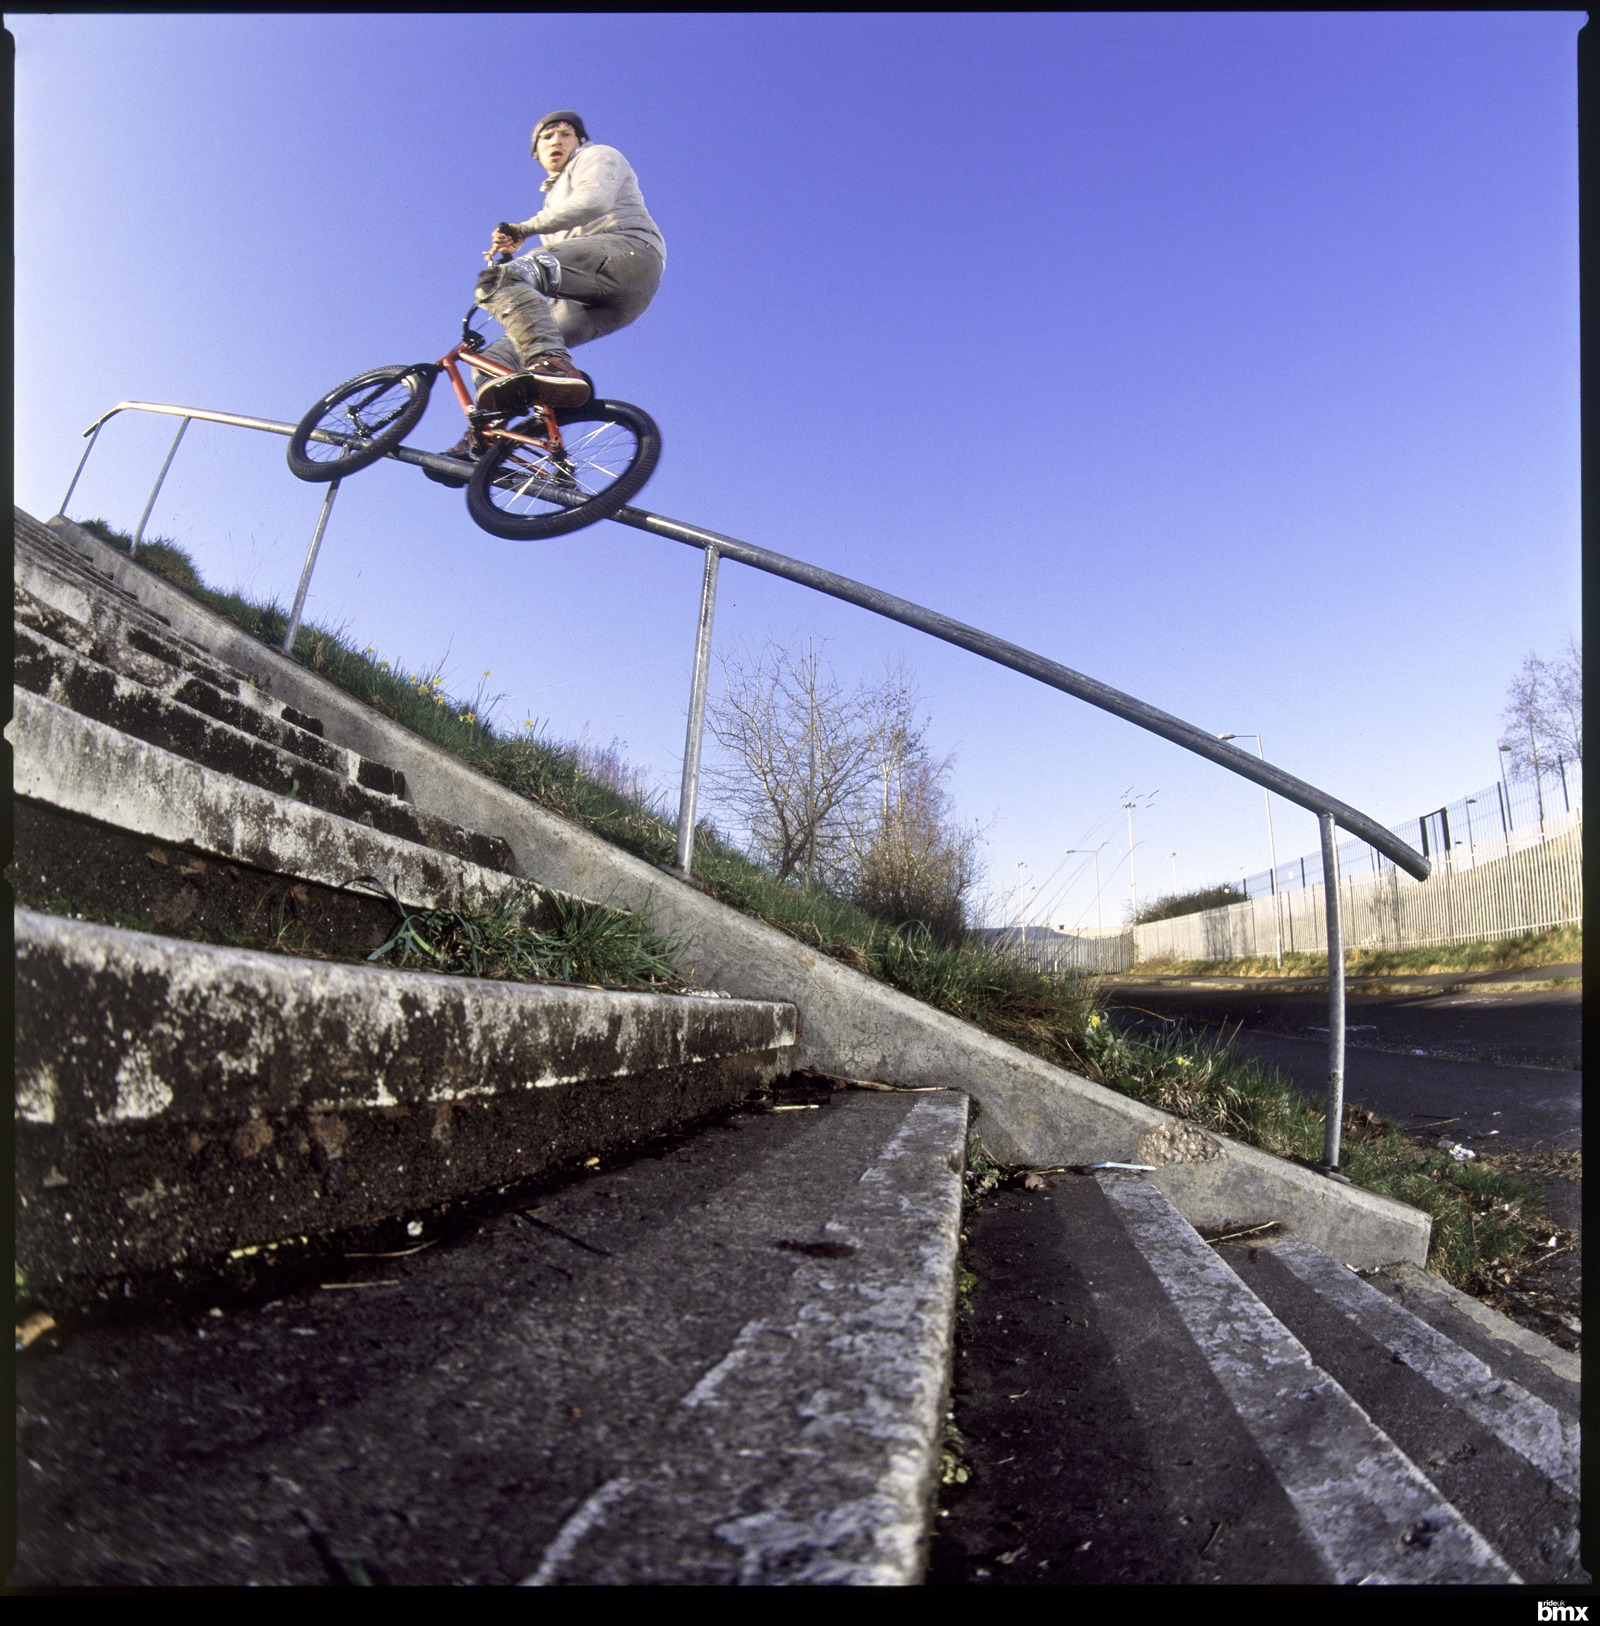 18 stair backwards rail to cab off the end. Philly D is a badman!